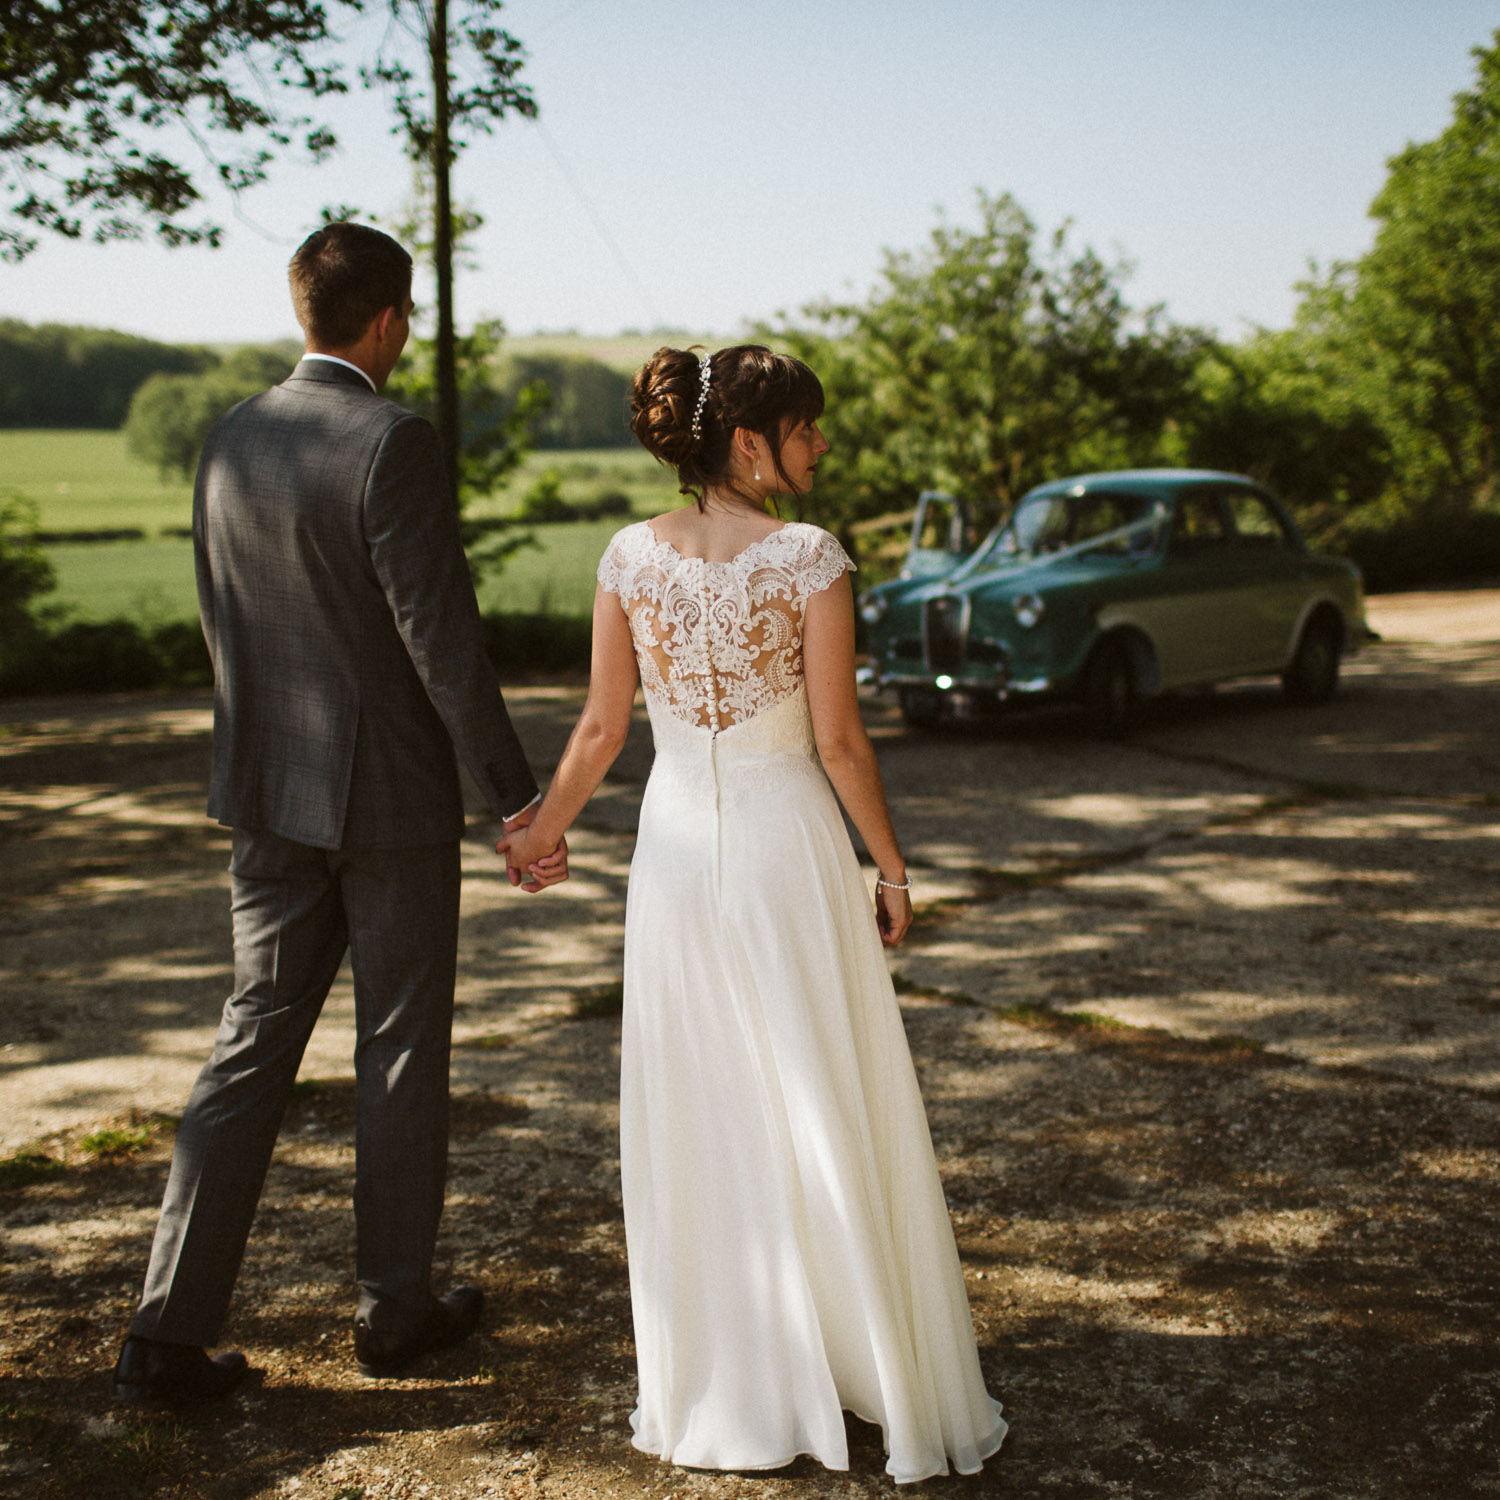 bride and groom from behind with vintage car